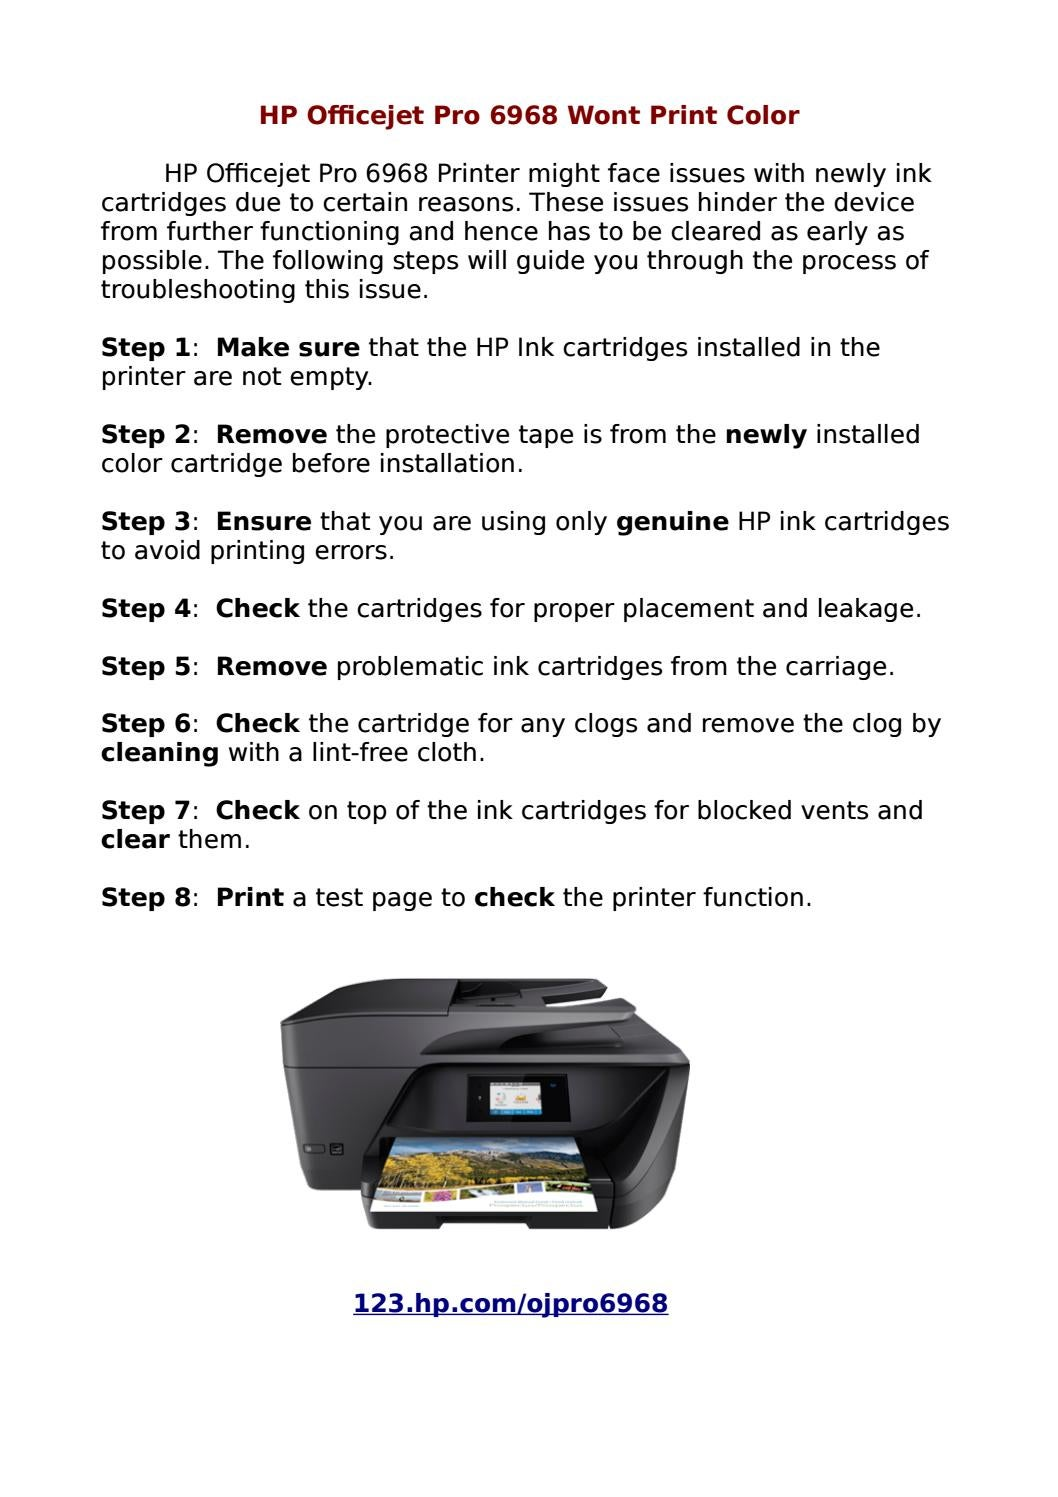 Instant Support for Troubleshooting HP Officejet Pro 6968